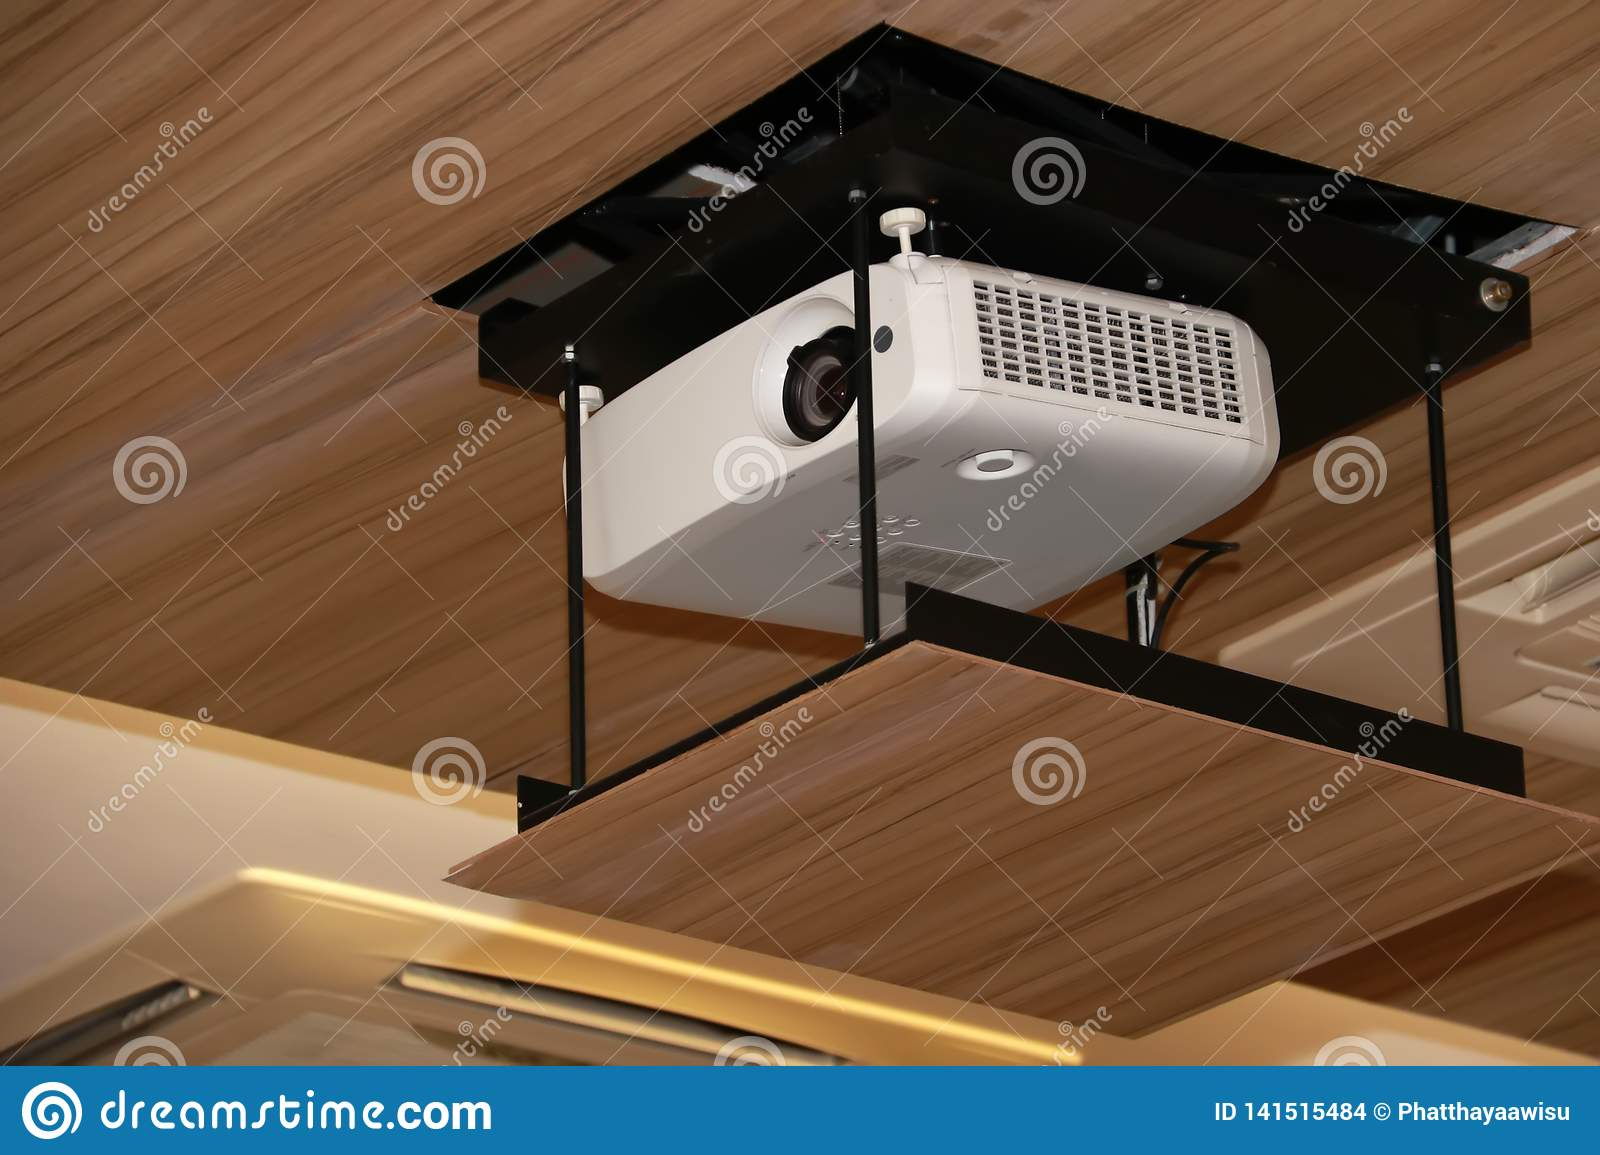 Projector hanging on meeting room ceiling